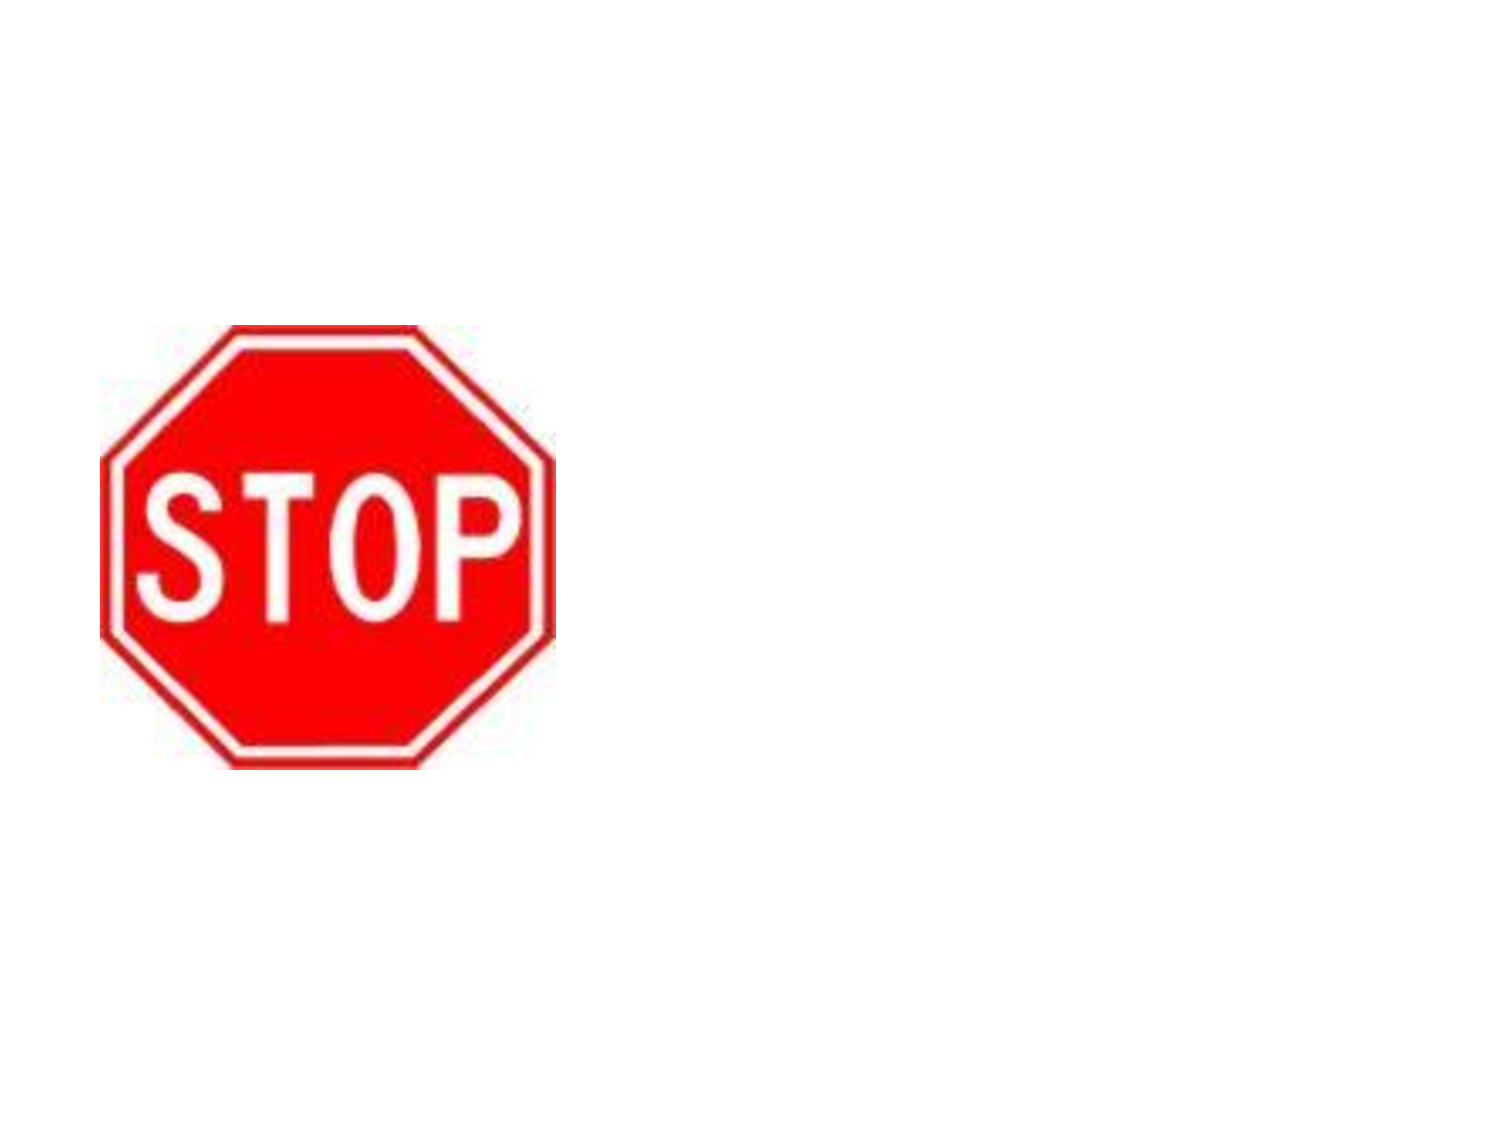 This is an image of Witty Printable Picture of a Stop Sign